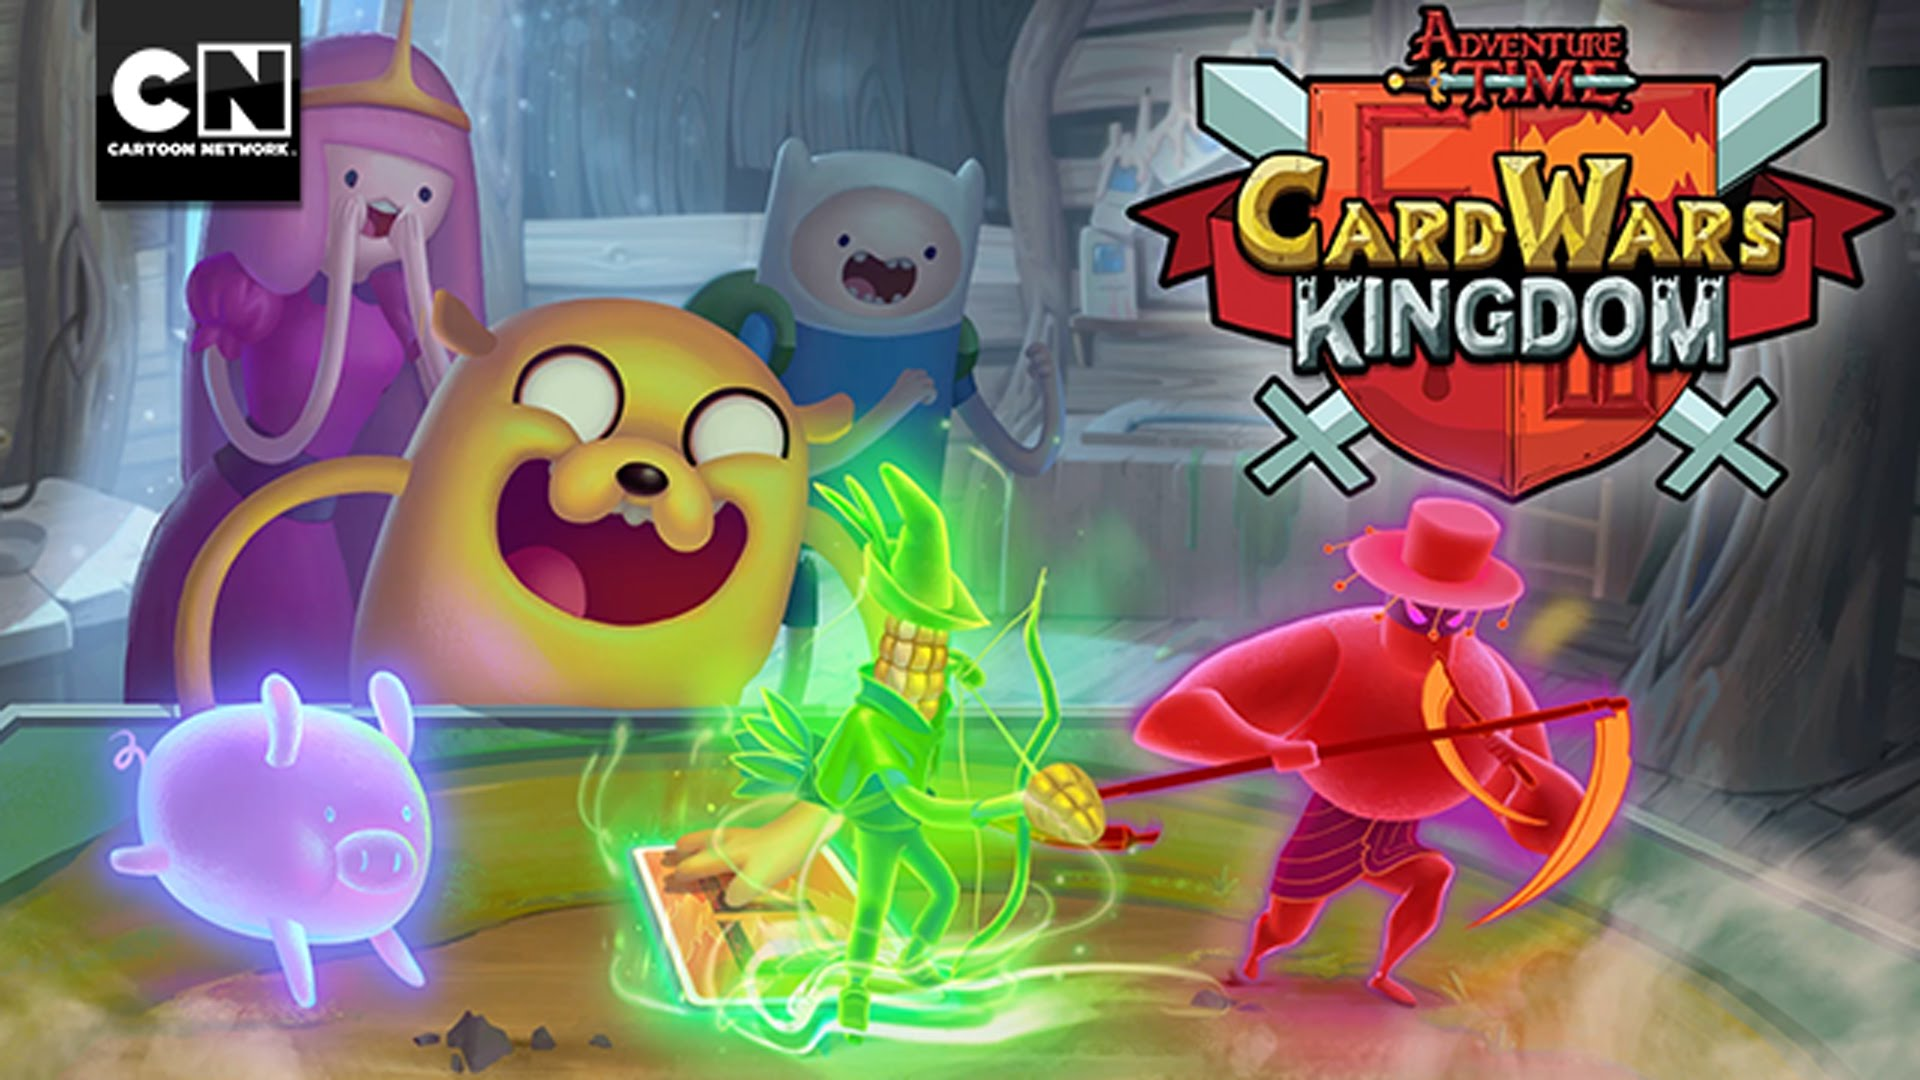 Card Wars Kingdom giochi per Android giochi per iPhone e iPad Avr magazine